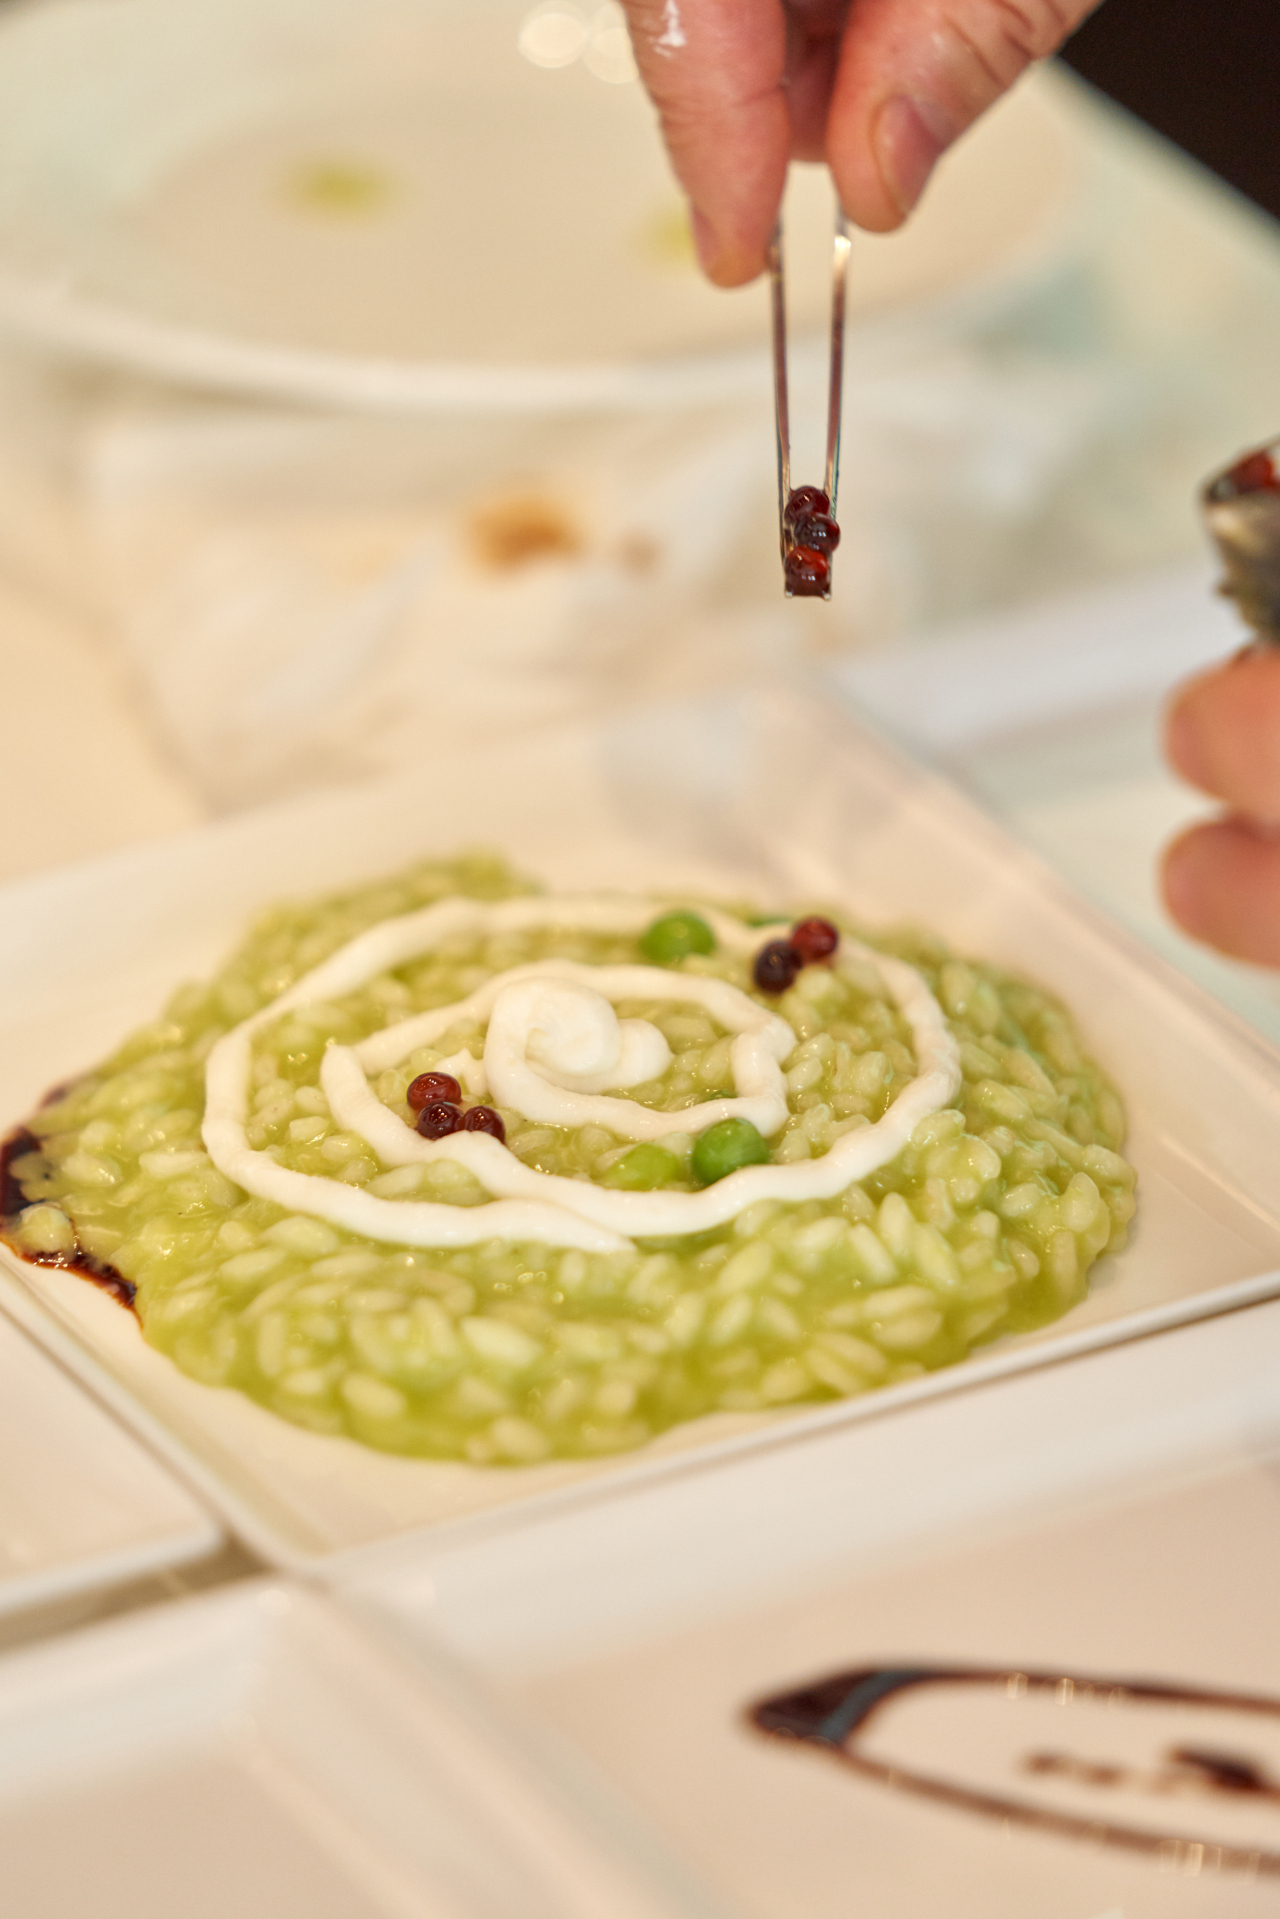 Carcangiu puts the finishing touches on risotto, made with ingredients sourced from Emilia-Romagna, northern Italy. (ITCCK)